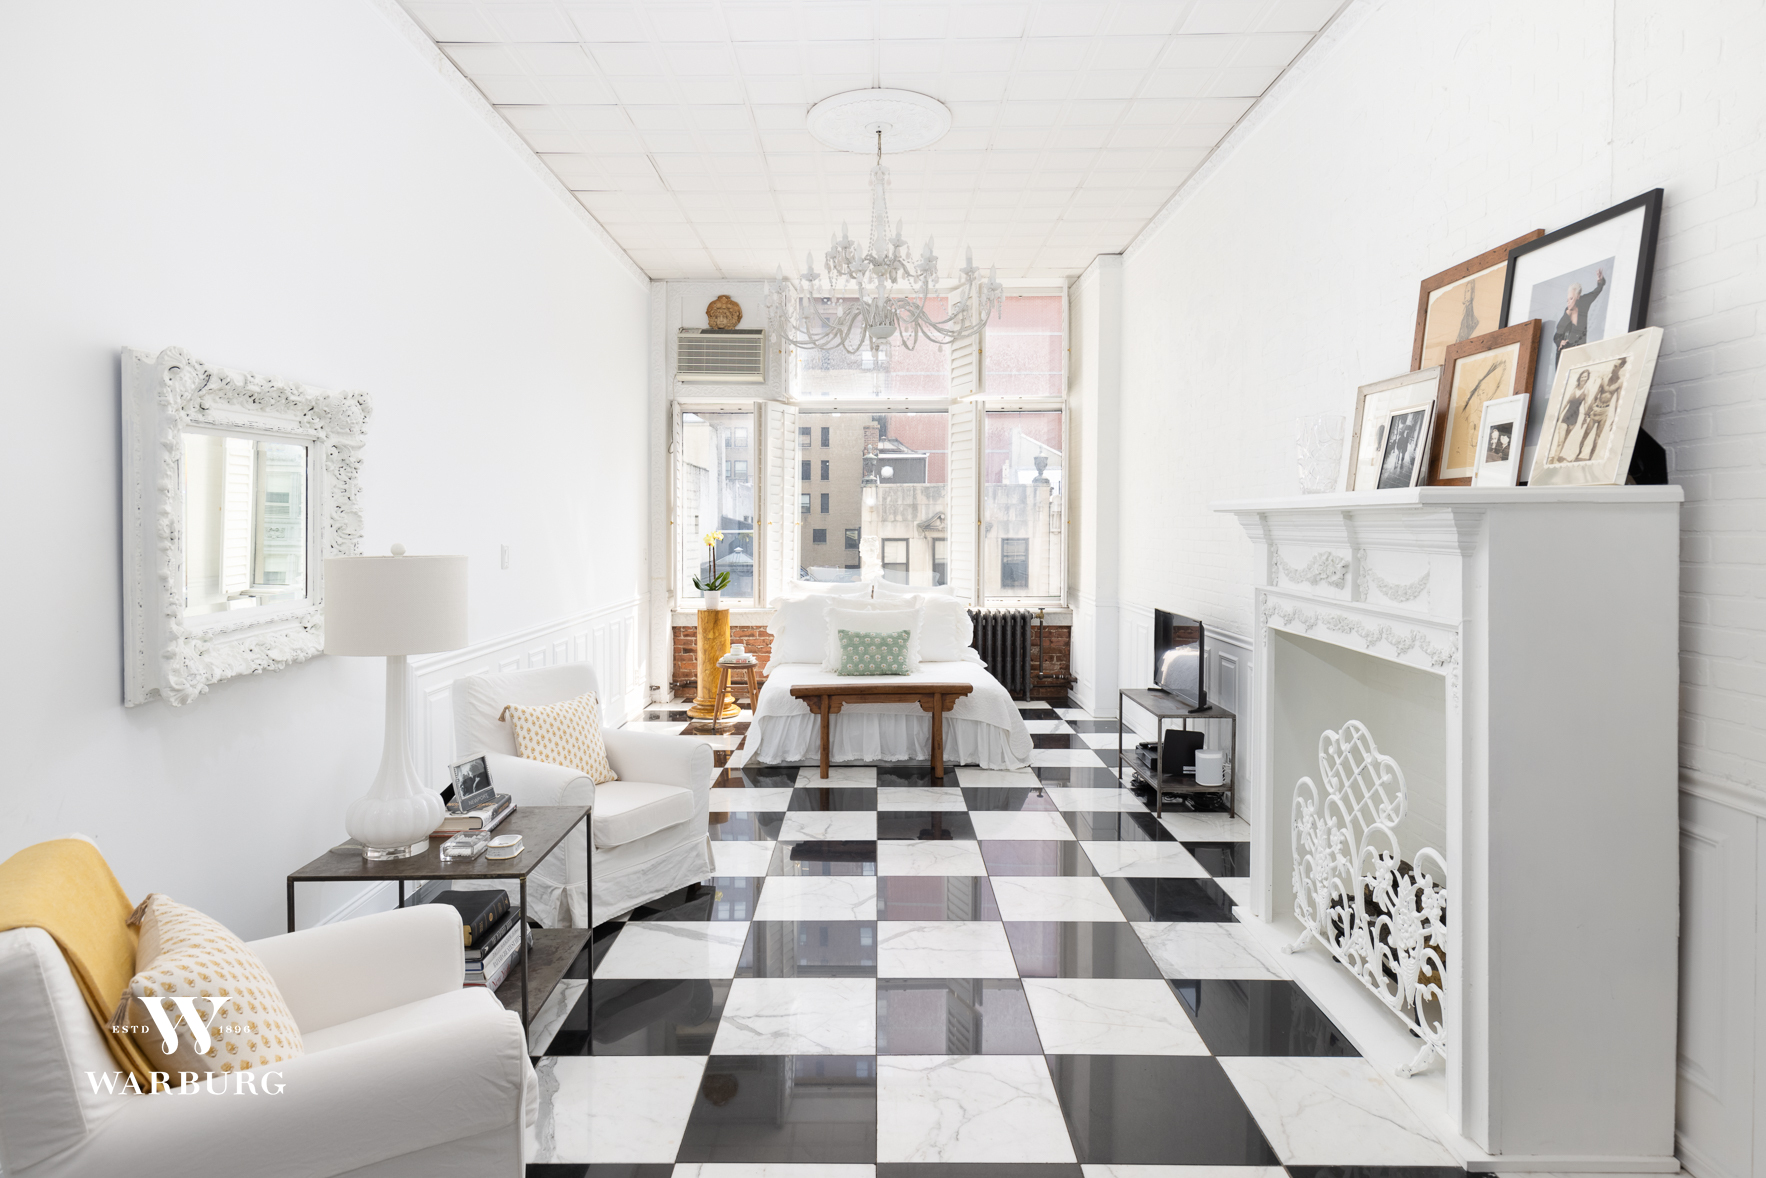 Fifth Avenue beauty with a French twist.  With its soaring 11+ foot ceiling, wall of windows overlooking Fifth Avenue, benchmade cabinetry, and black & white marble floor - this  sweeping 39' salon-style loft is a showstopper. The open kitchen was conceived with the chef who loves to entertain in mind. The decorative wall treatment throughout creates a textured yet pared-down aesthetic with a Parisian sensibility. White plantation shutters, a bespoke set of glass-front arched closets, lofted storage, and a clawfoot tub are some of the unique details that greet you upon entry. Originally built in 1920 as a department store, 372 Fifth Avenue is a full-service building with live-in super and laundry on every floor. The roof terrace has an awe-inspiring view of the Empire State Building. This flexible, pet friendly Coop allows pied-a-terres, co-purchasing, guarantors and subletting.